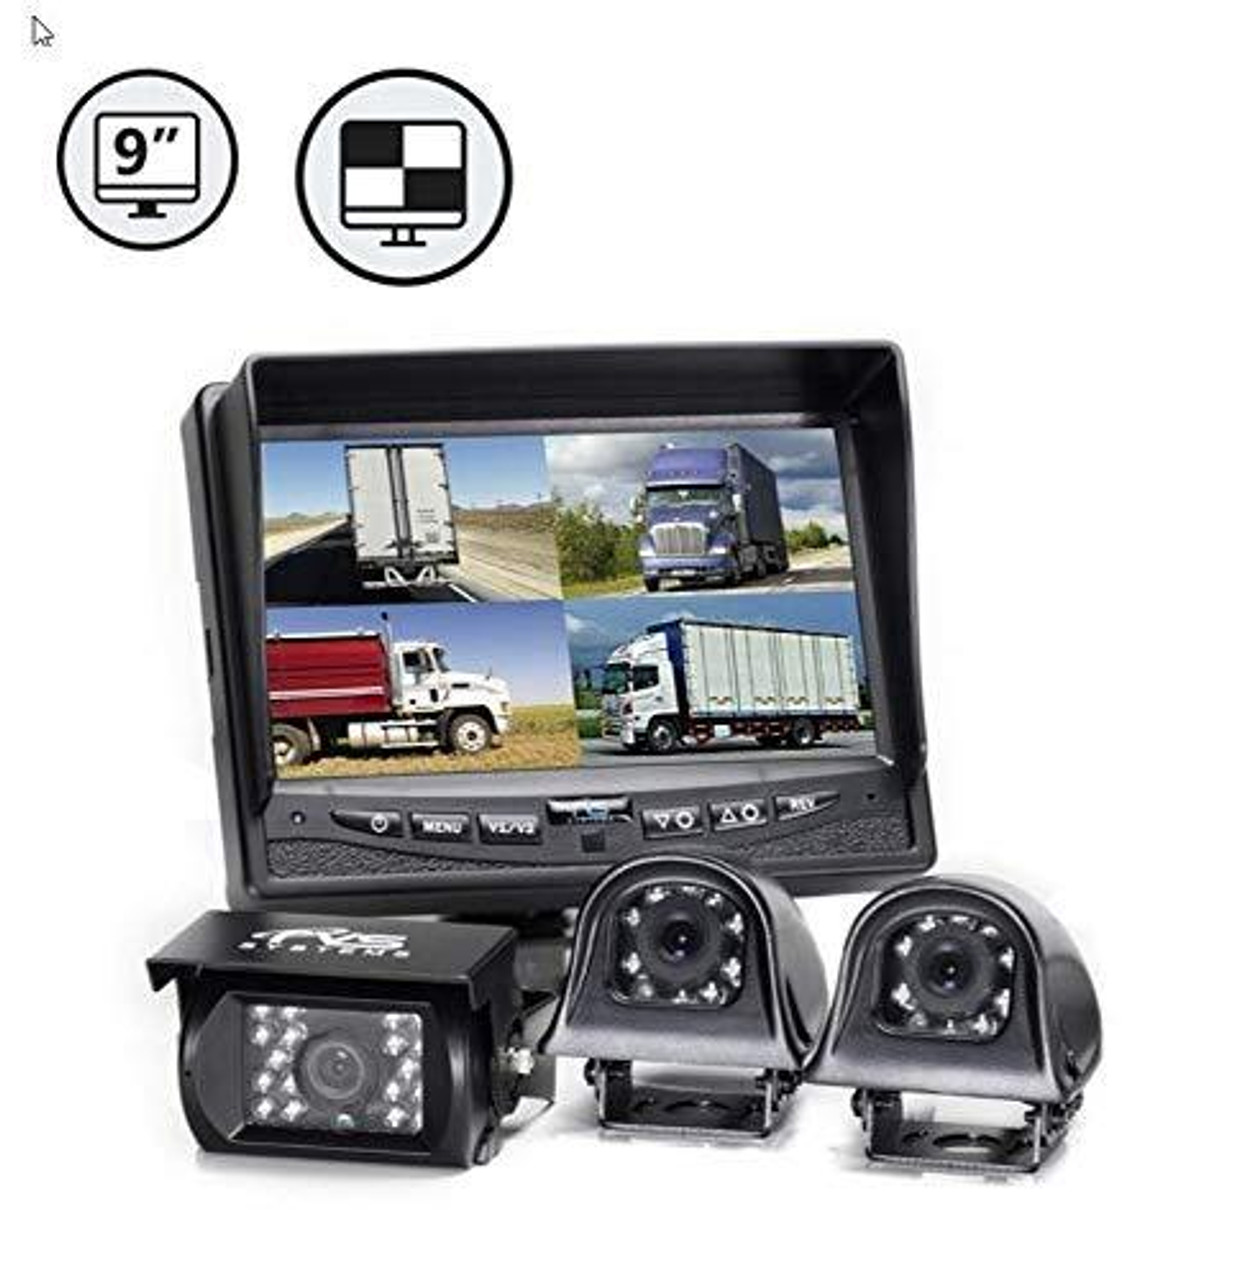 """9"""" QV Display, 1 x Backup Camera, Both Side Cameras, 1 x 33' Cable, 2 x 16' Cables"""